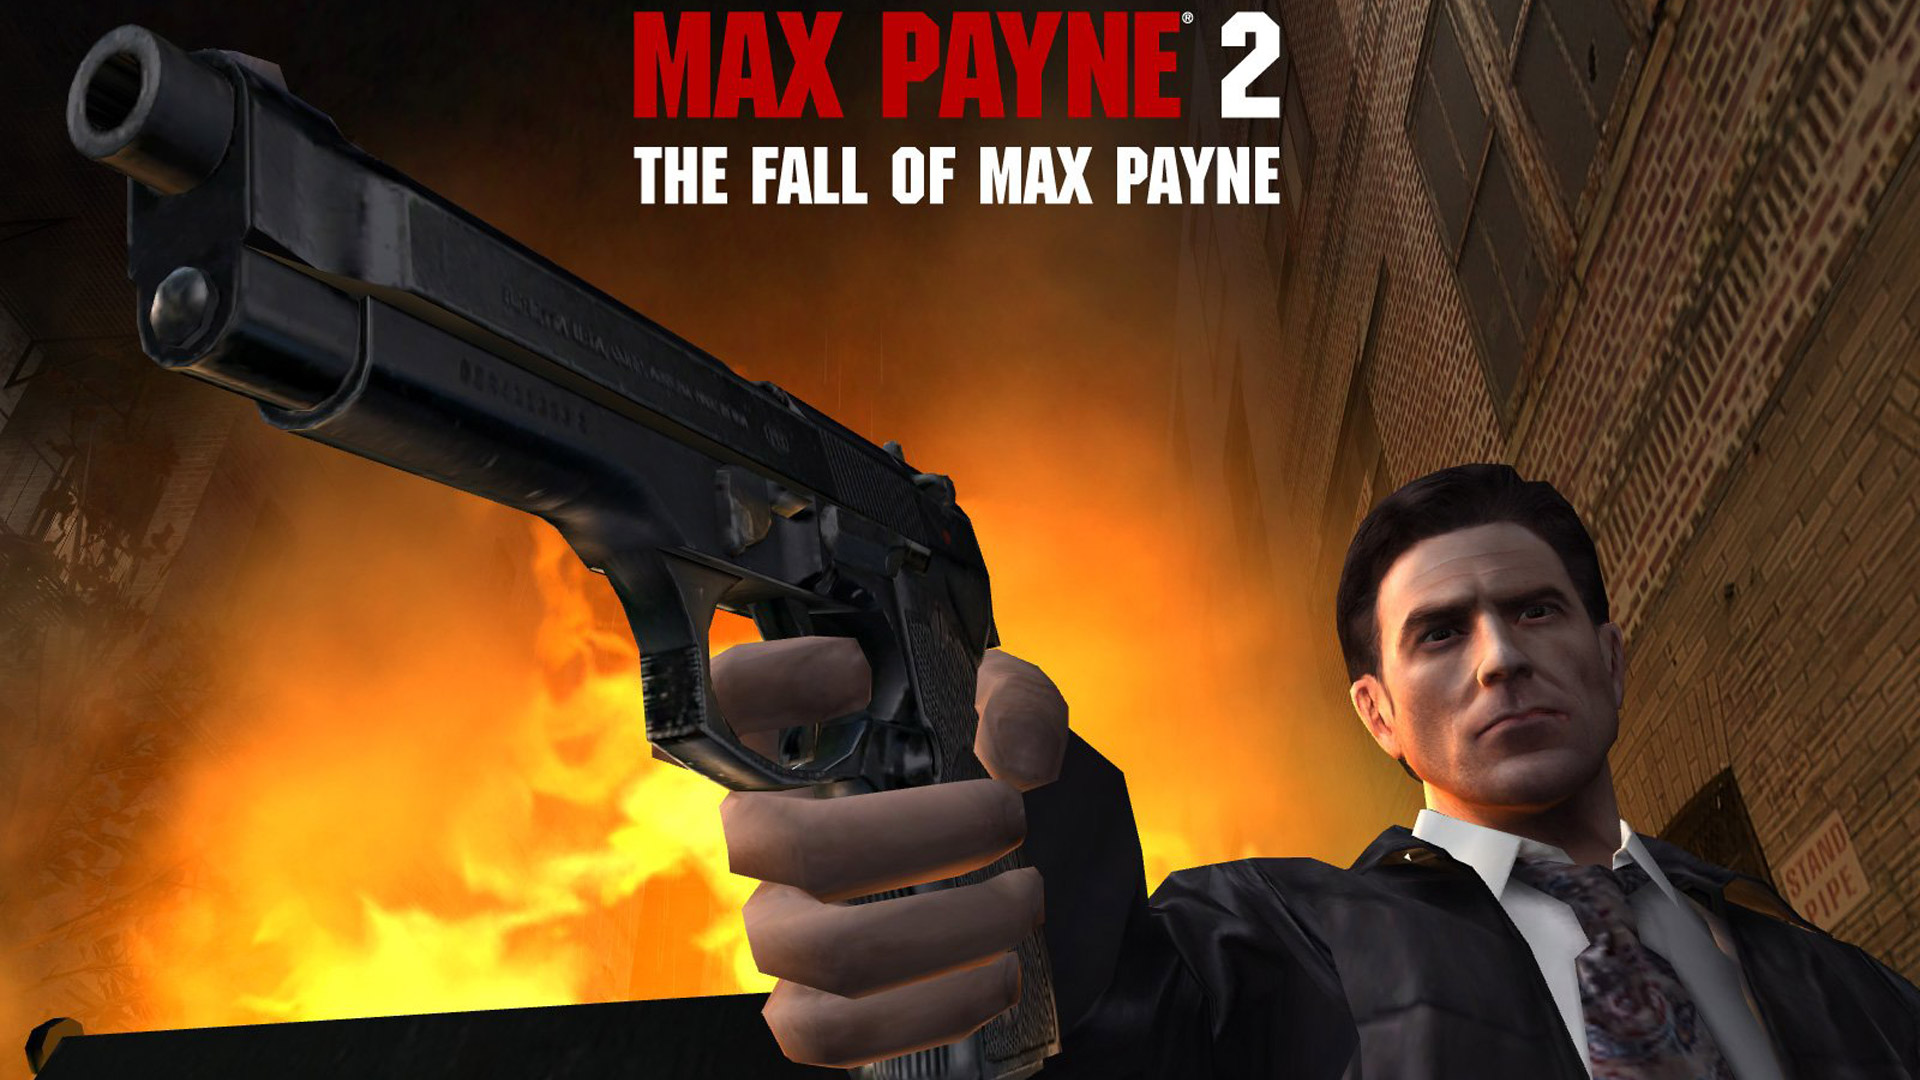 Max Payne 2: The Fall of Max Payne Wallpaper in 1920x1080